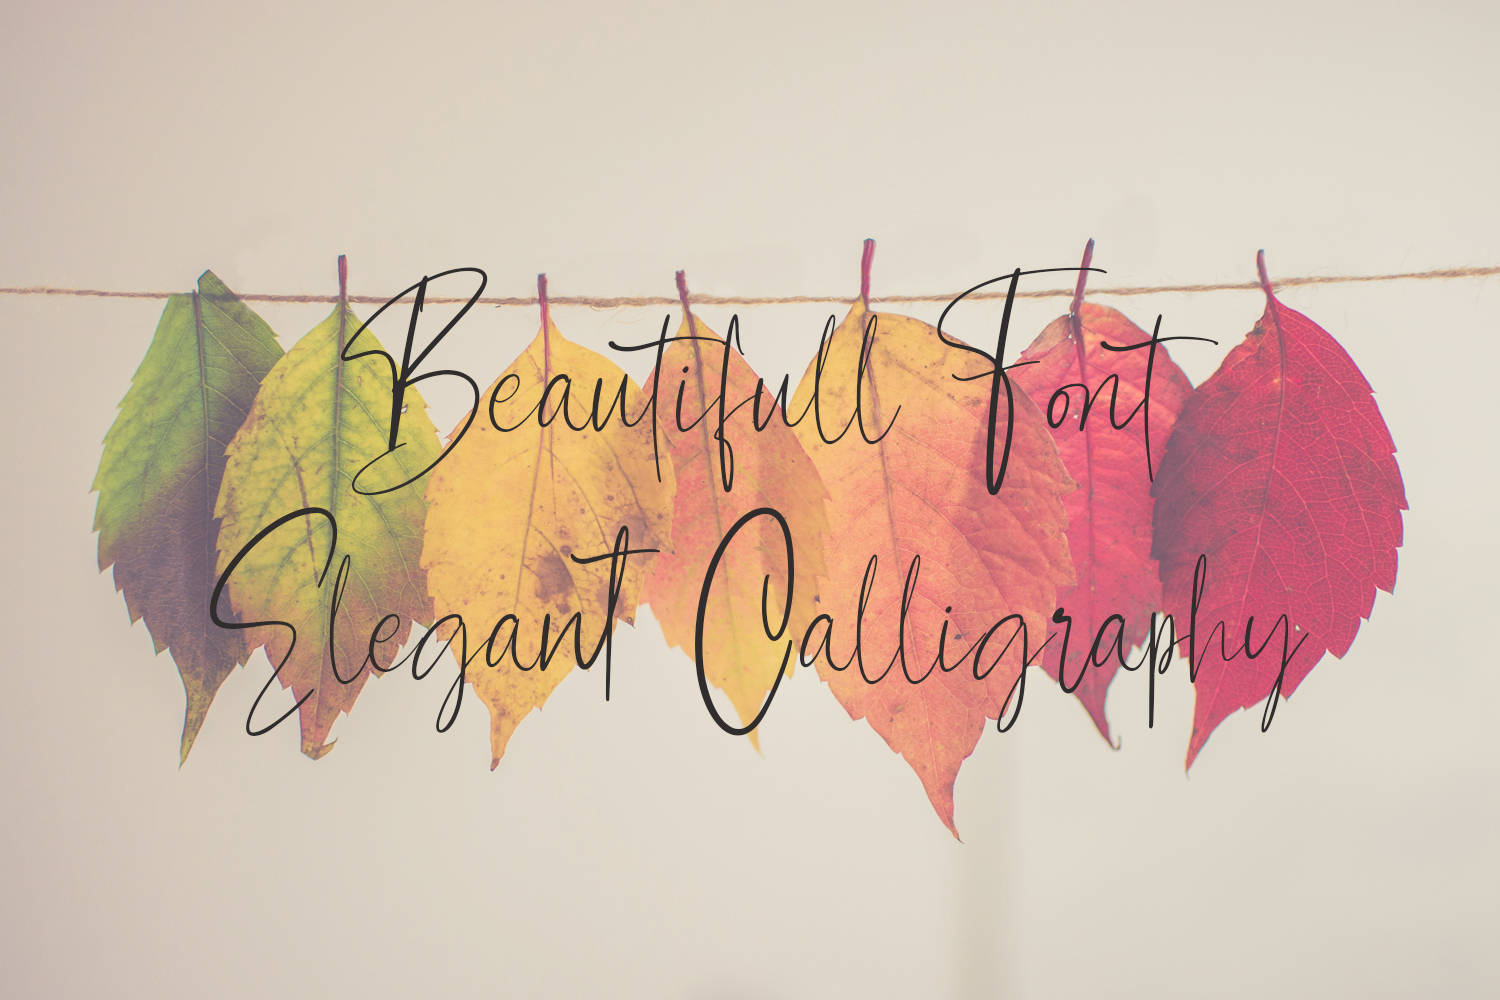 Contributor Calligraphy Font example image 4